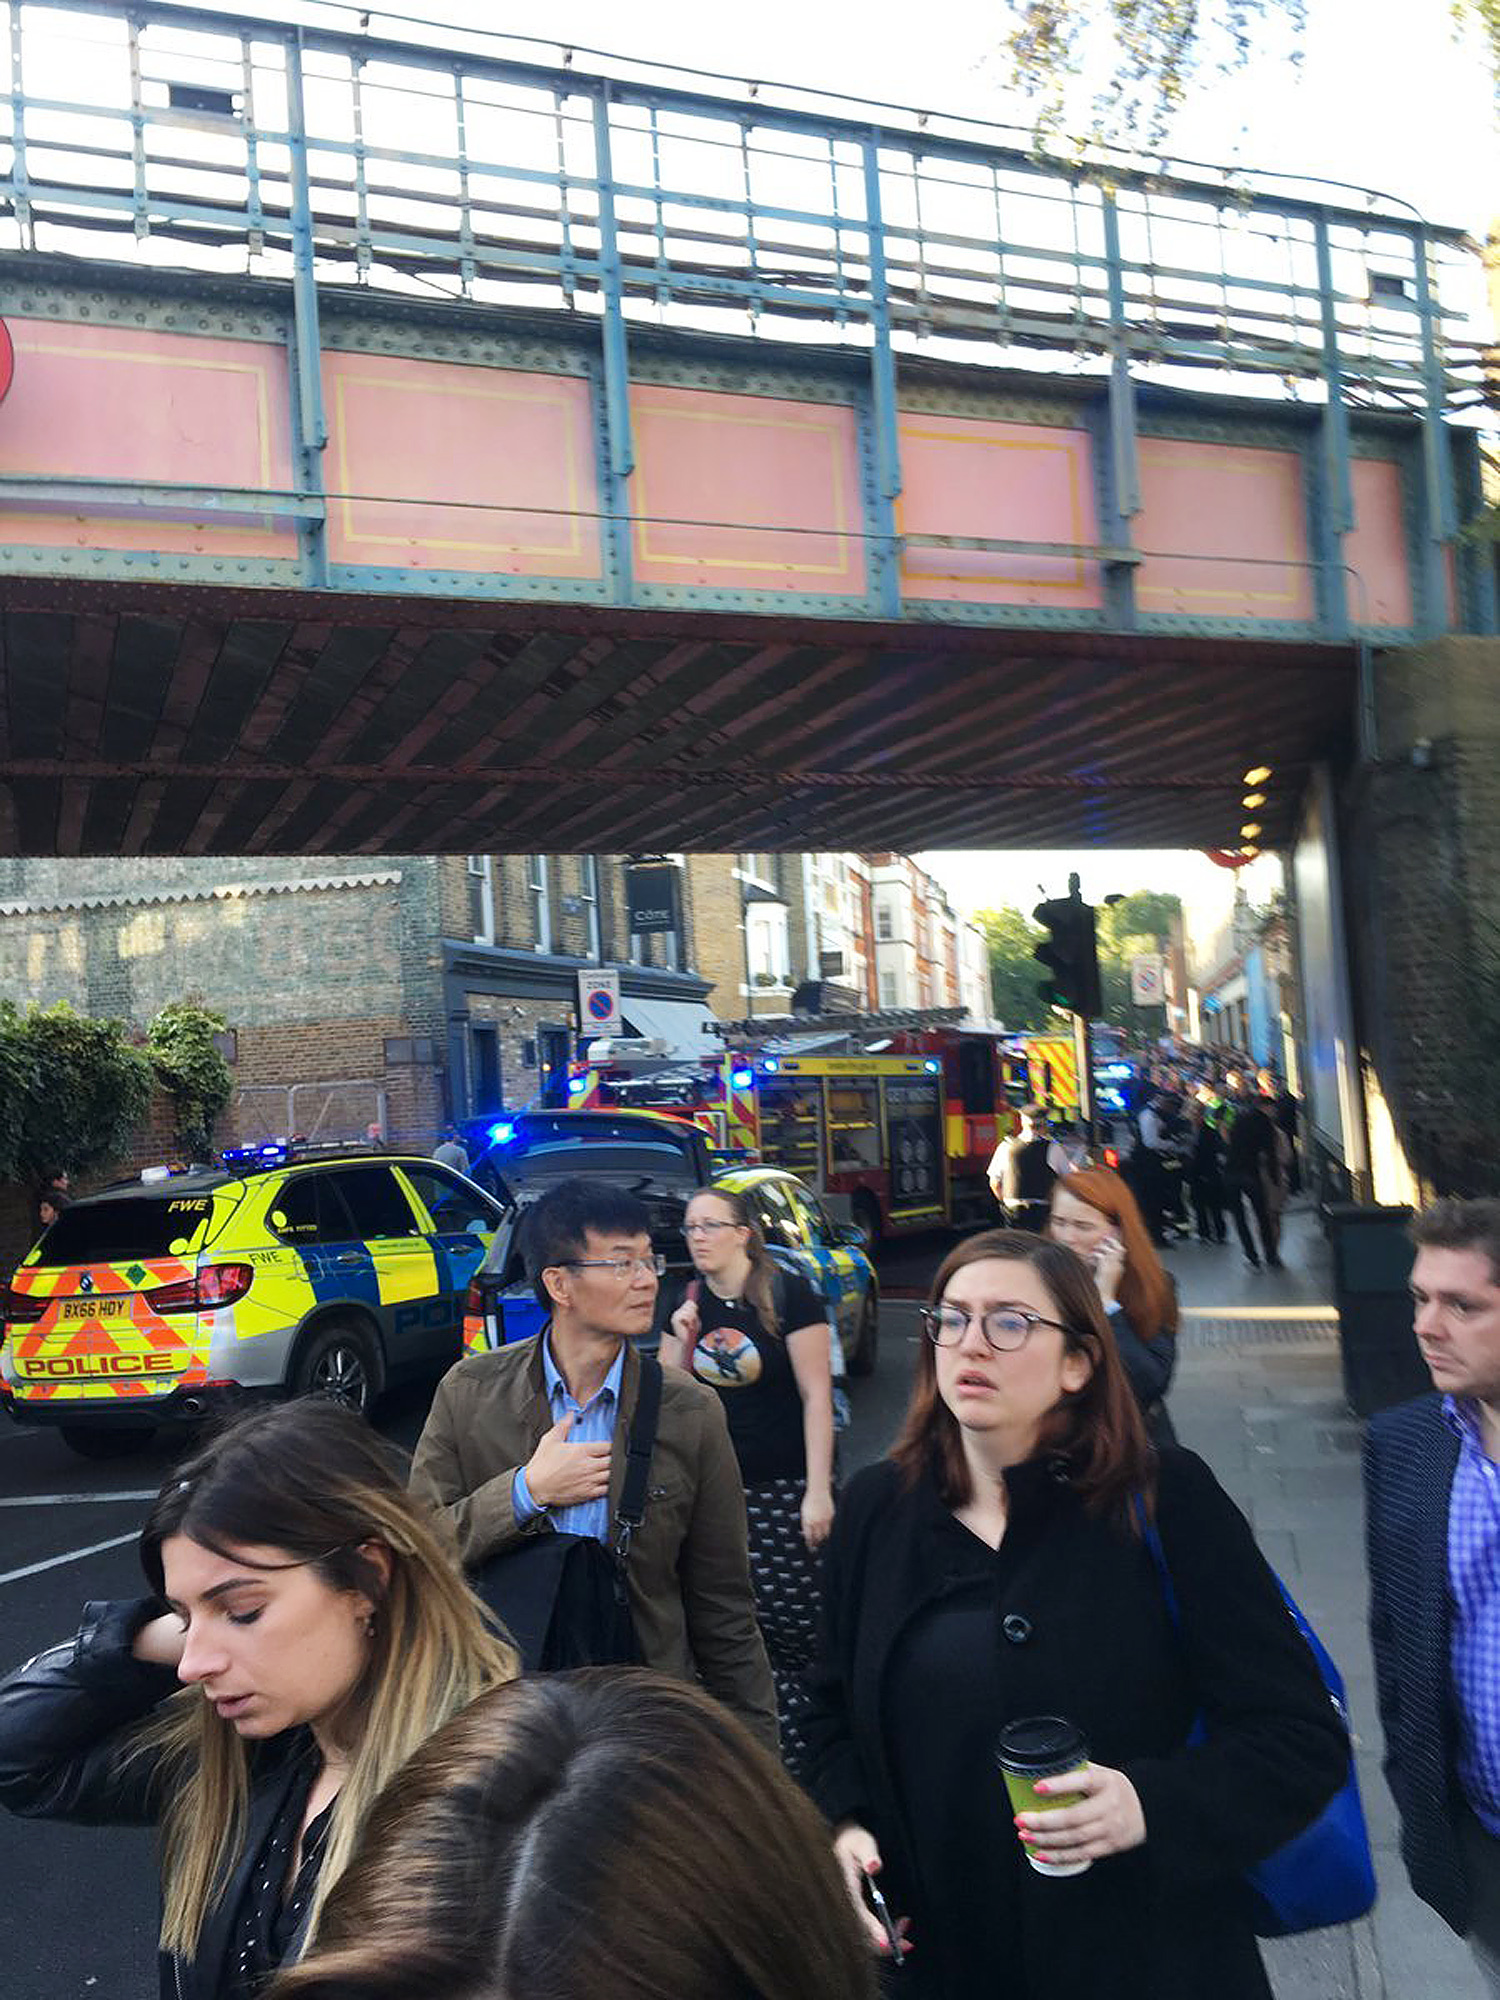 <div class='meta'><div class='origin-logo' data-origin='none'></div><span class='caption-text' data-credit='Alex Littlefield via AP'>People leave the scene of an explosion at a southwest London subway station in London Friday, Sept. 15, 2017.</span></div>